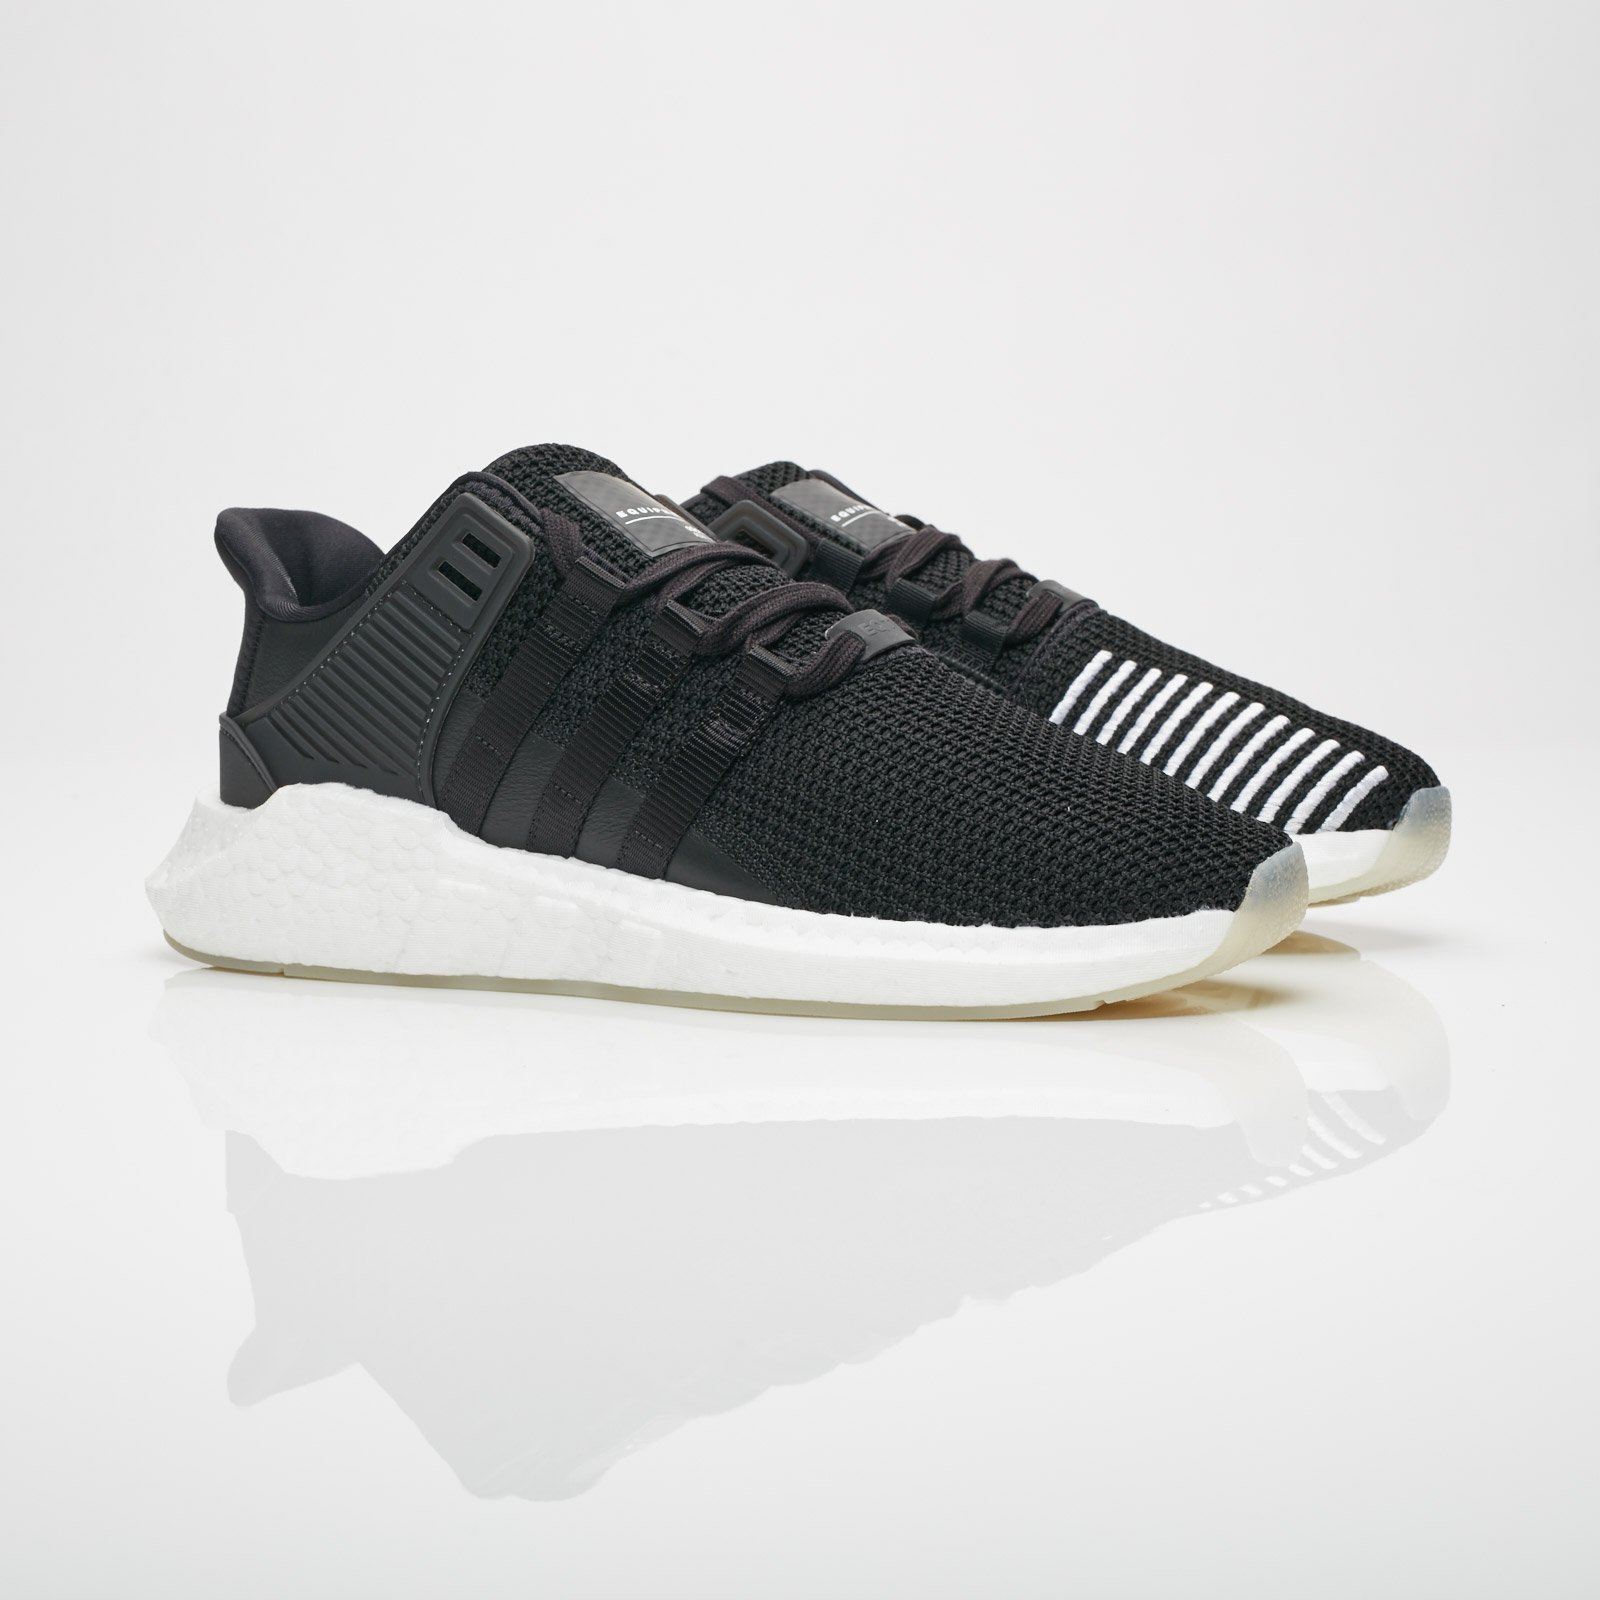 the best attitude a0c87 22307 adidas EQT Support 93/17 - Bz0585 - Sneakersnstuff ...